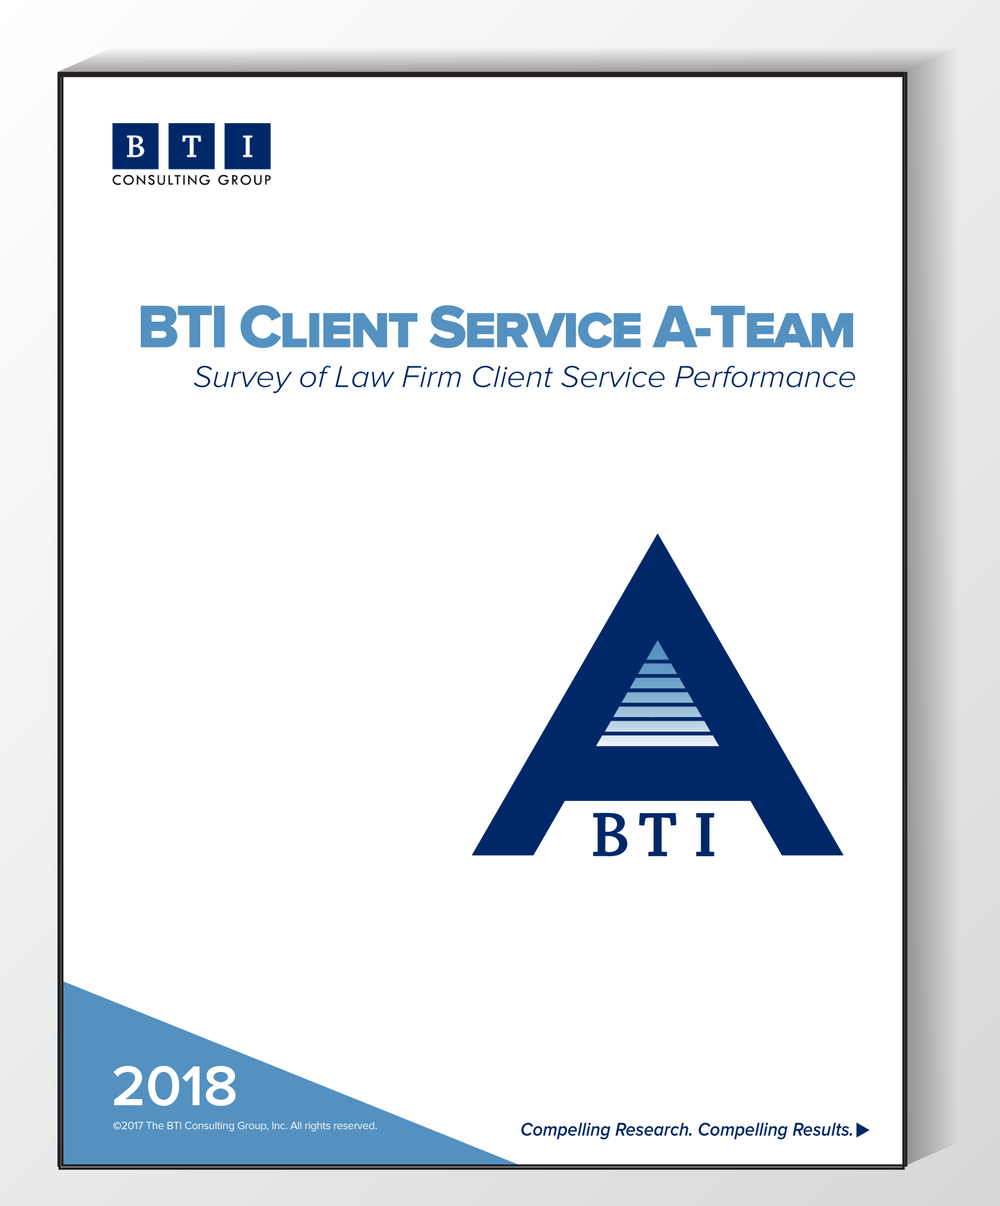 BTI_Client_Service_A-Team_2018_Cover-01.png